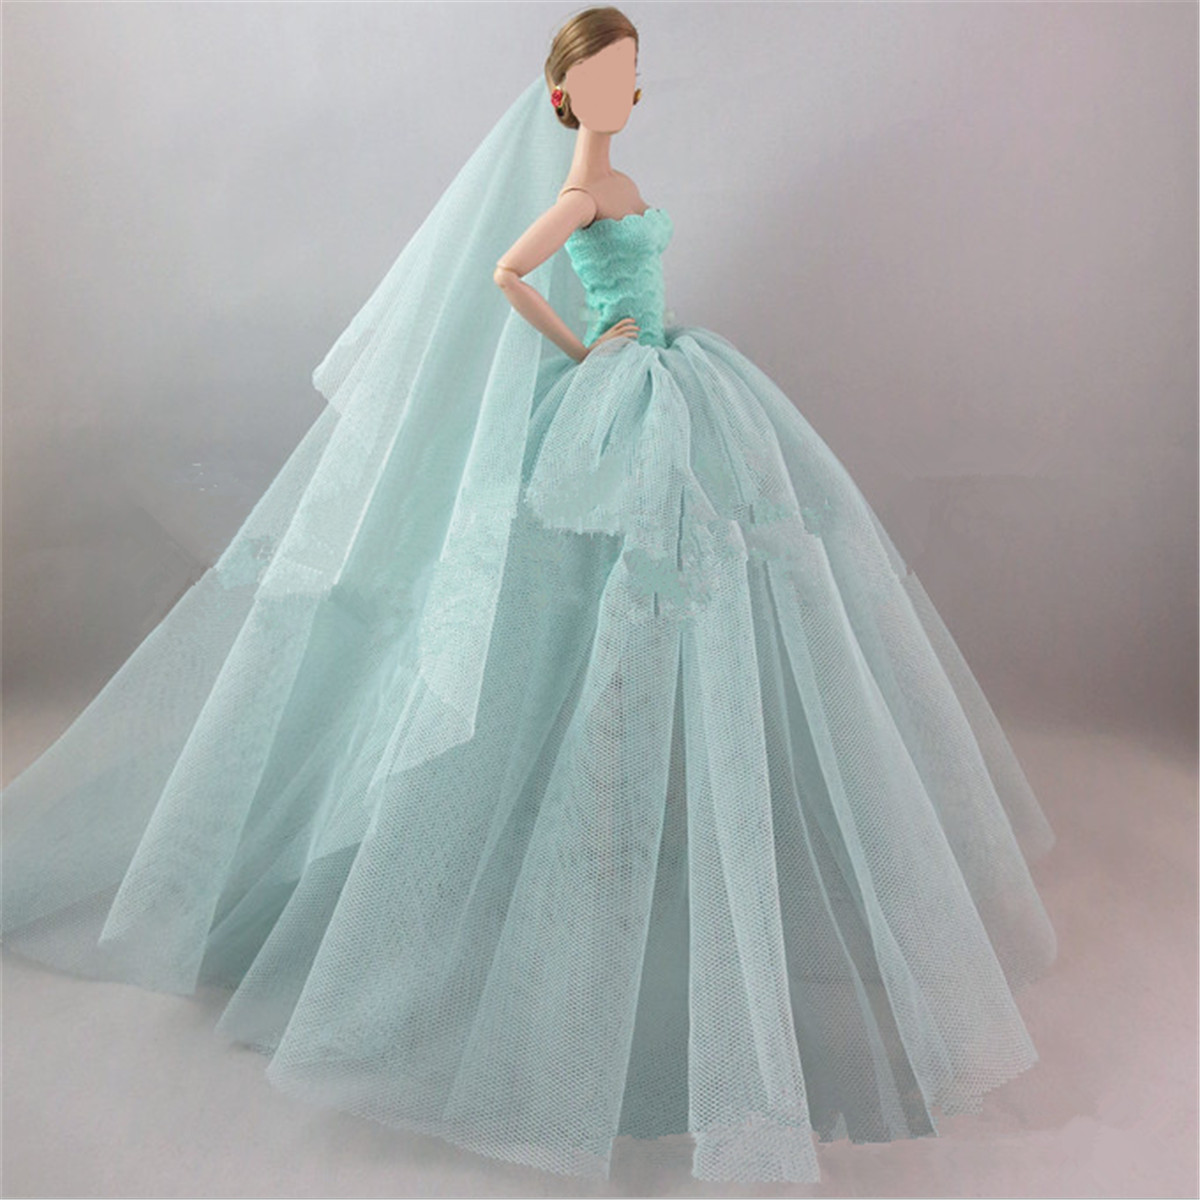 Handmade Fashion Princess Party Dress/Wedding Clothes/Gown+veil for ...